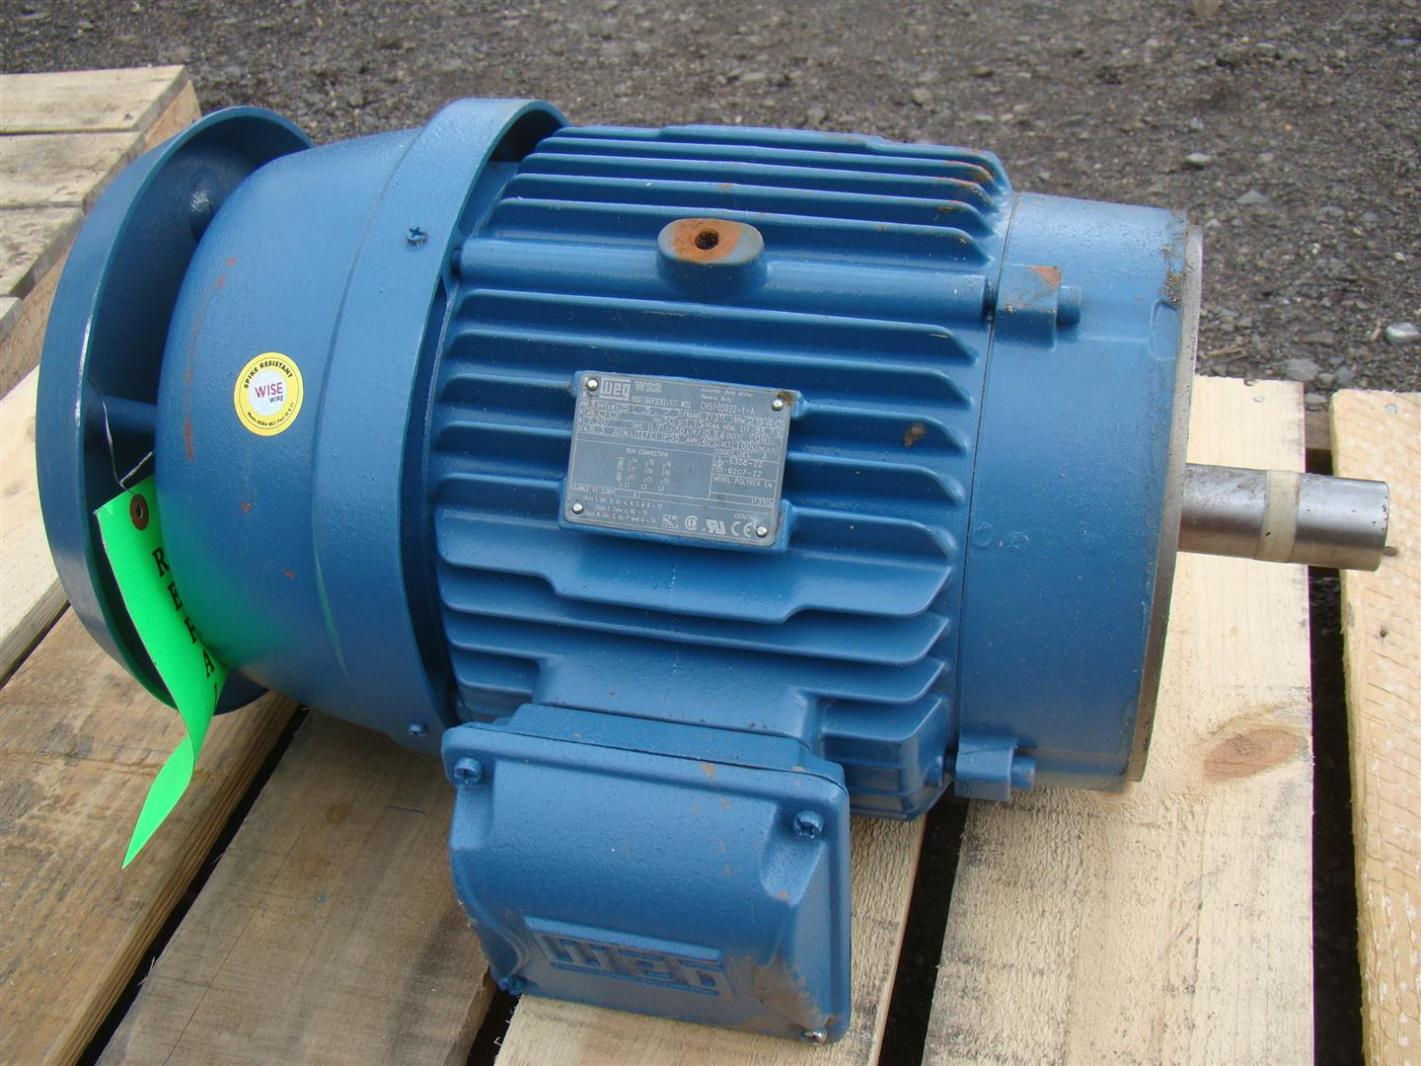 Weg 3 Phase Electric Motor Inverter Duty 5 Hp 2940 Rpm